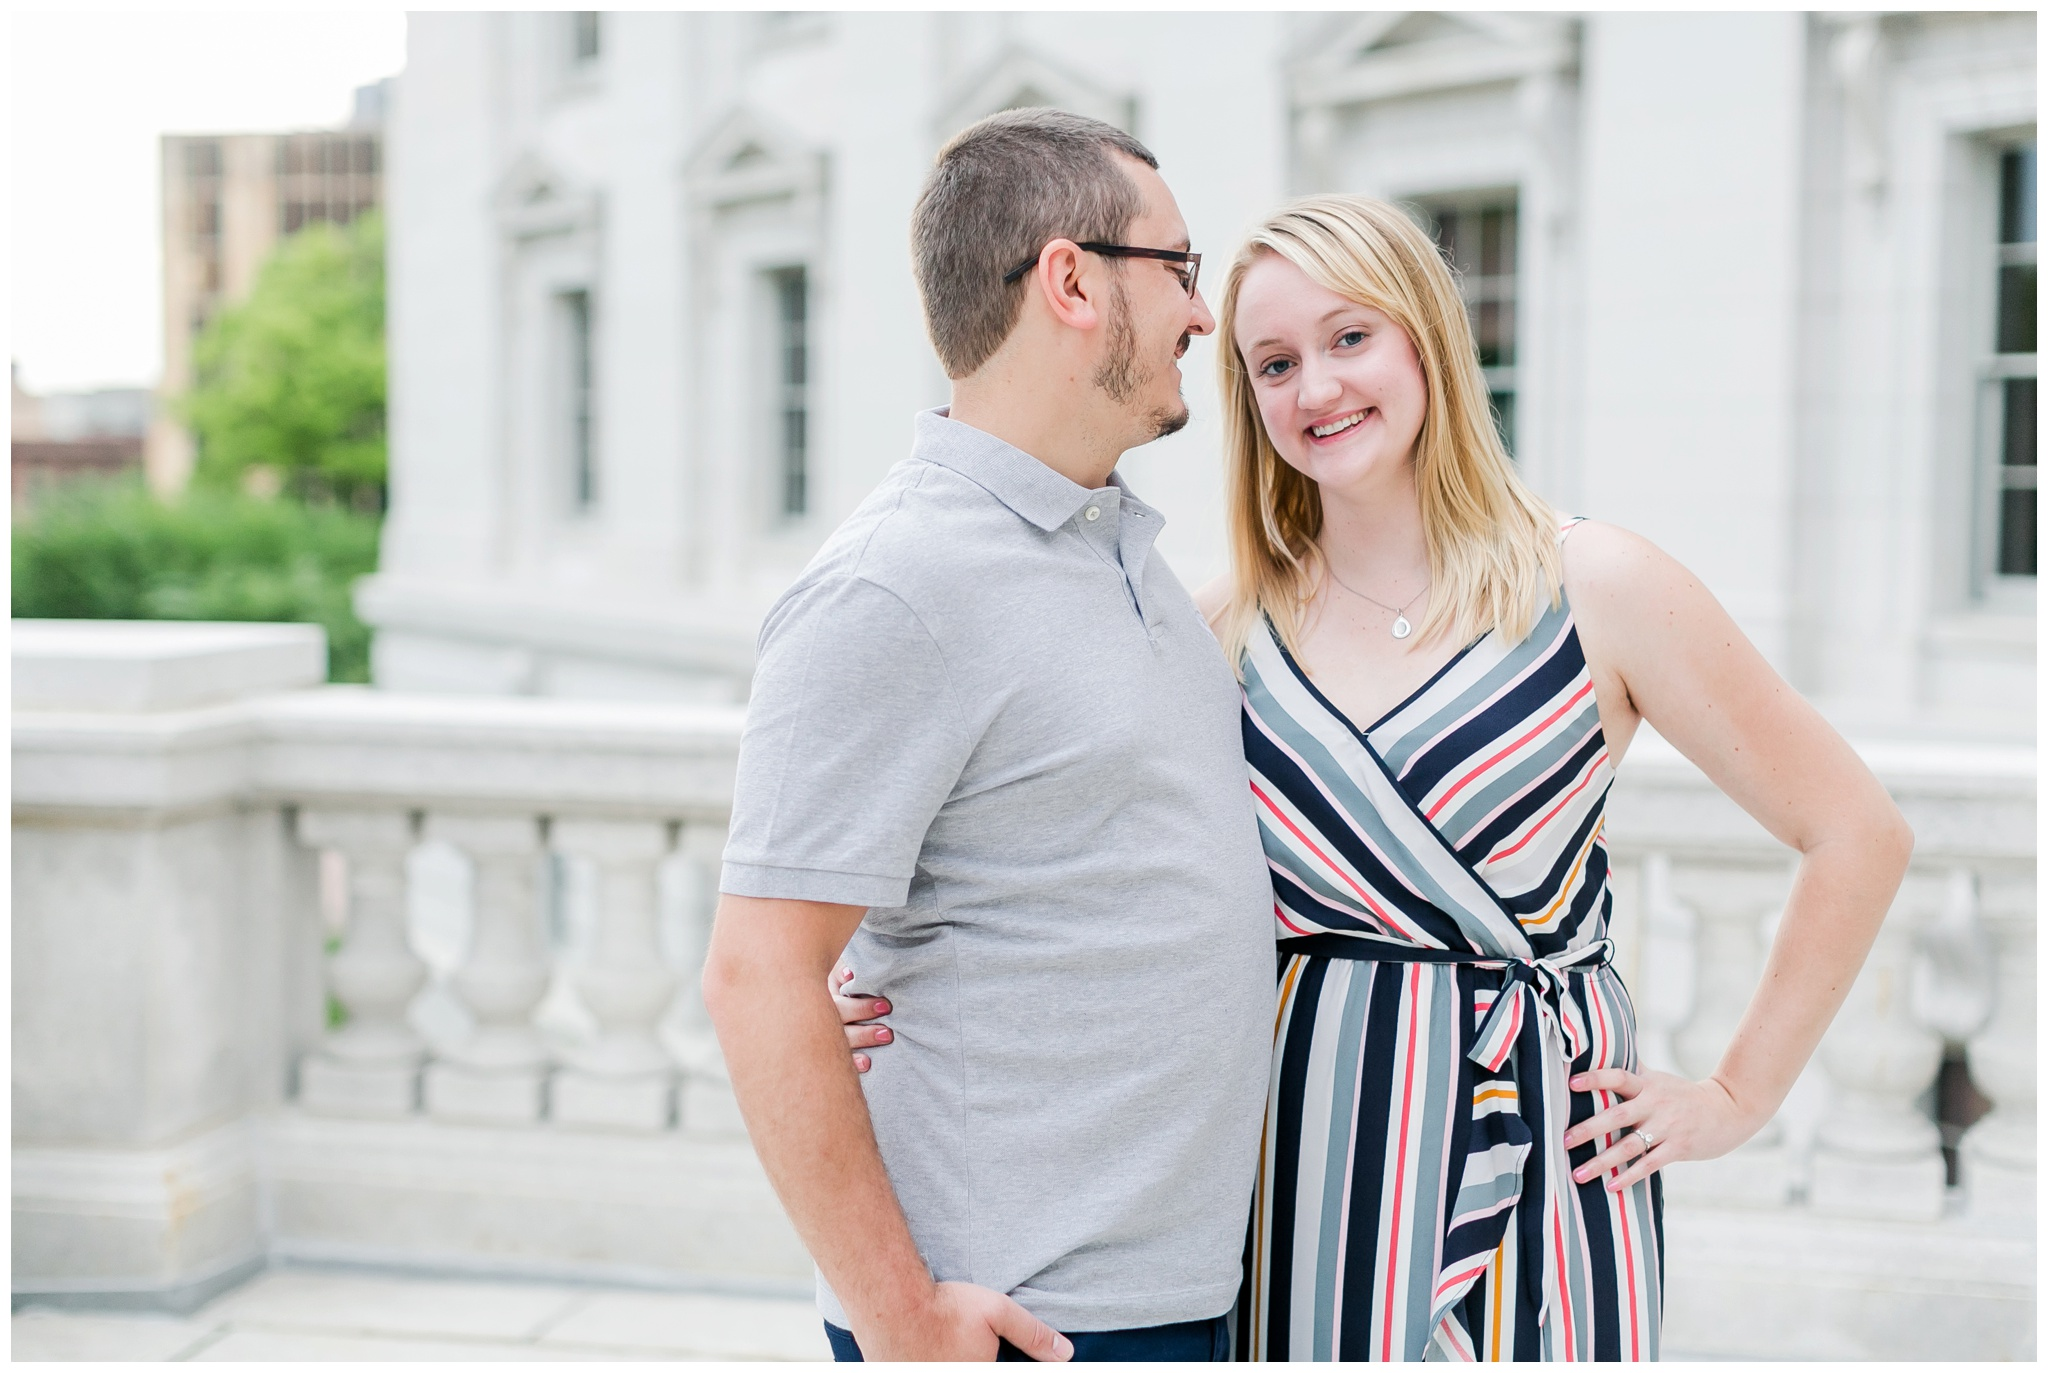 Downtown_madison_wisconsin_engagement_session_4217.jpg